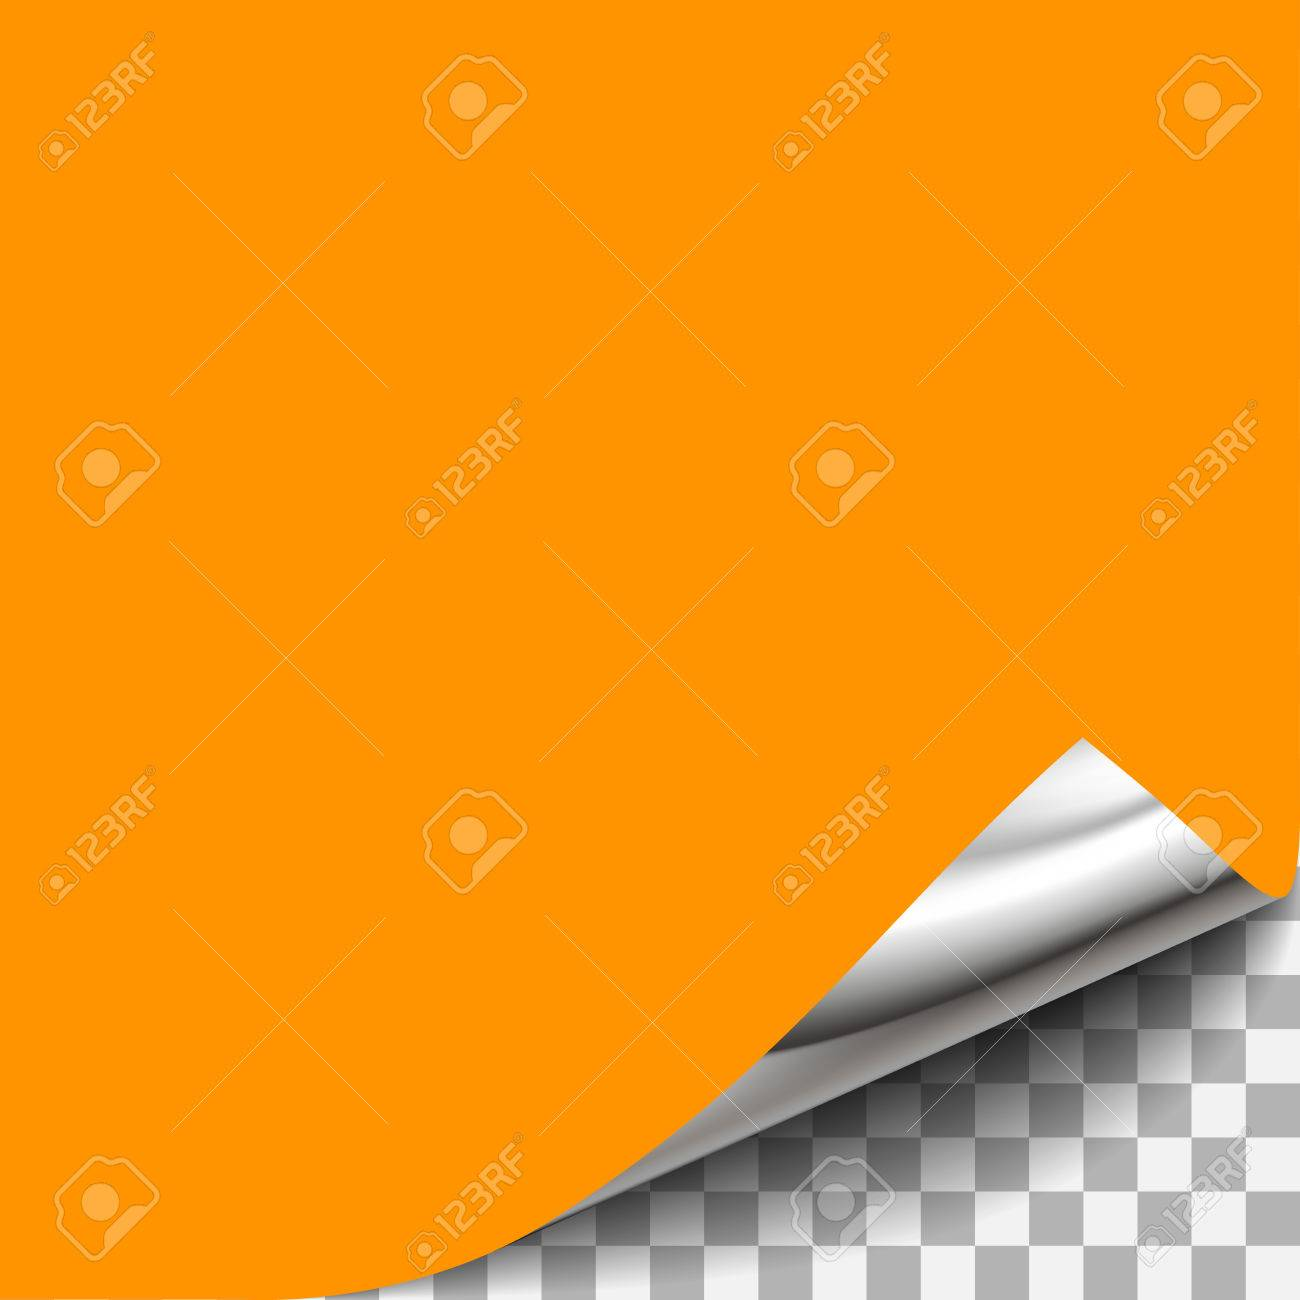 Curled Transparent Paper Corner. For shet of paper page design with curled corner, document design with curled corner, web graphic with curled corner, design with curled corner - 59591050